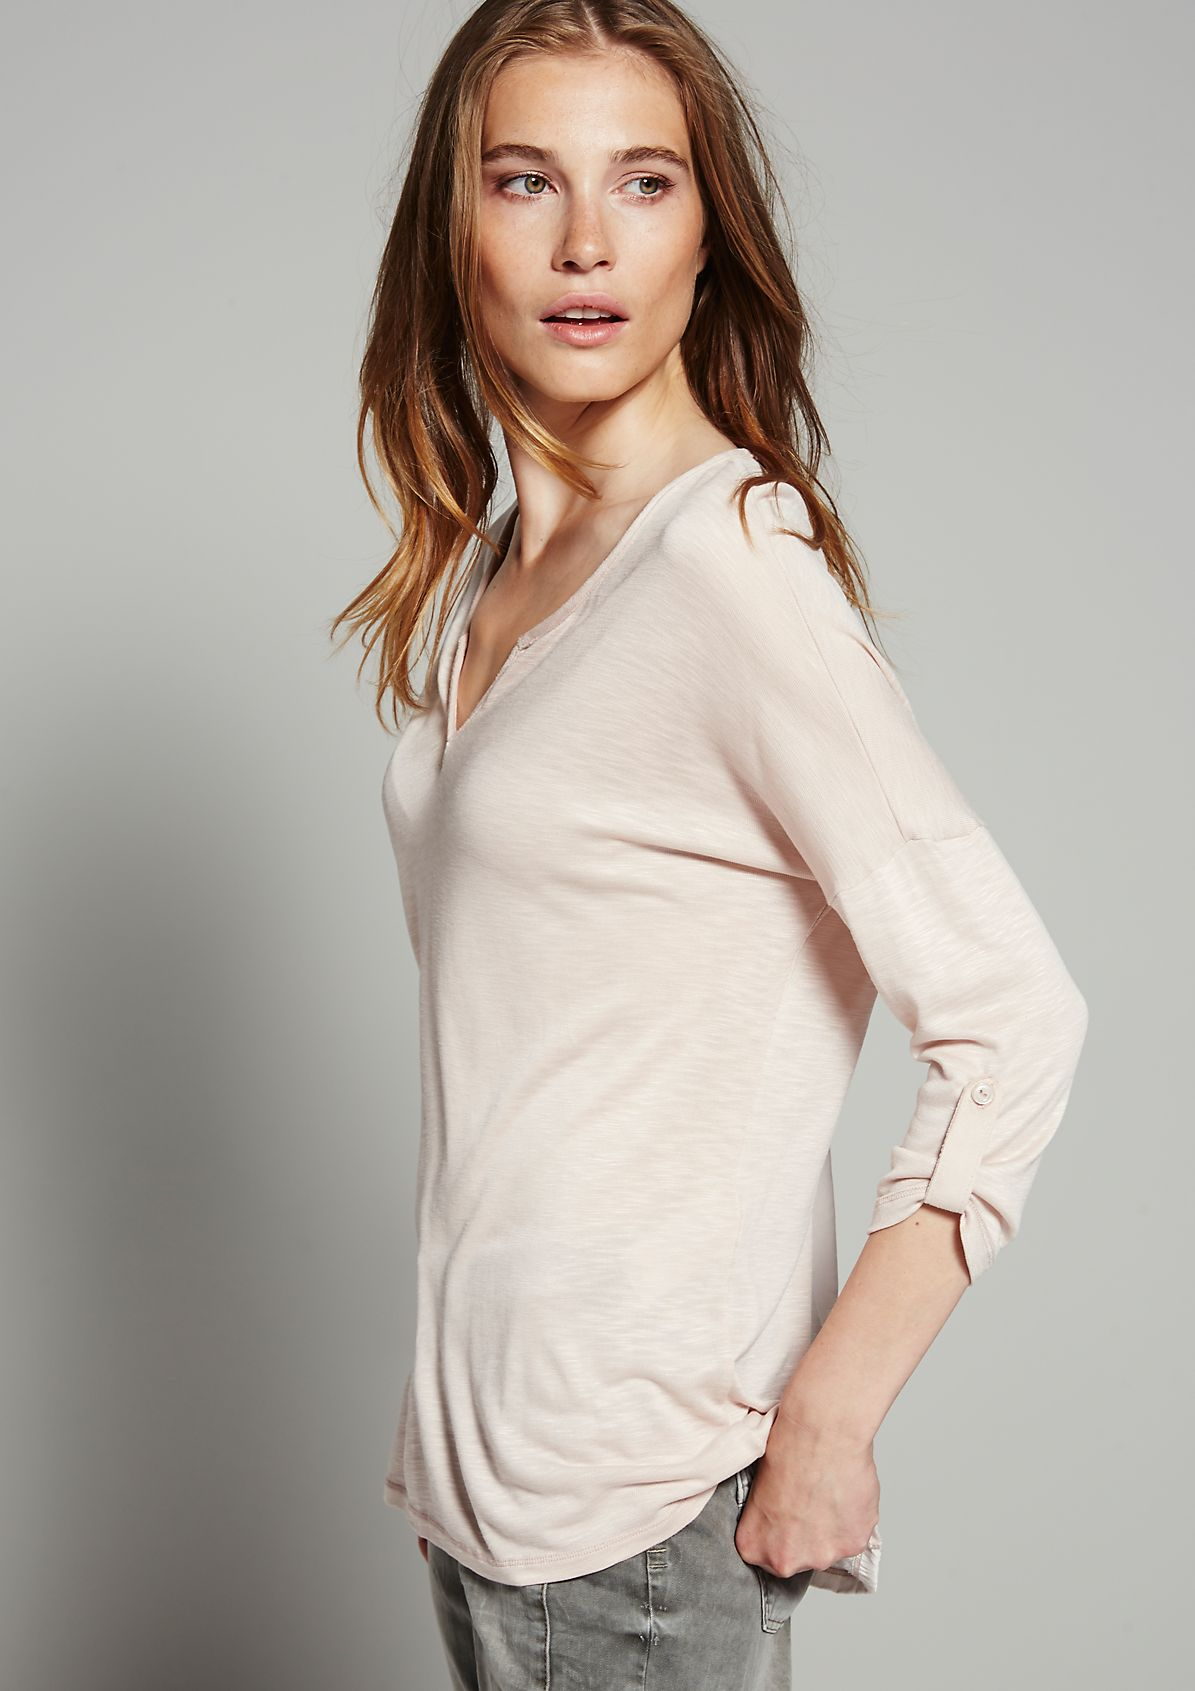 Top with 3/4-length sleeves and imitation leather elements from s.Oliver